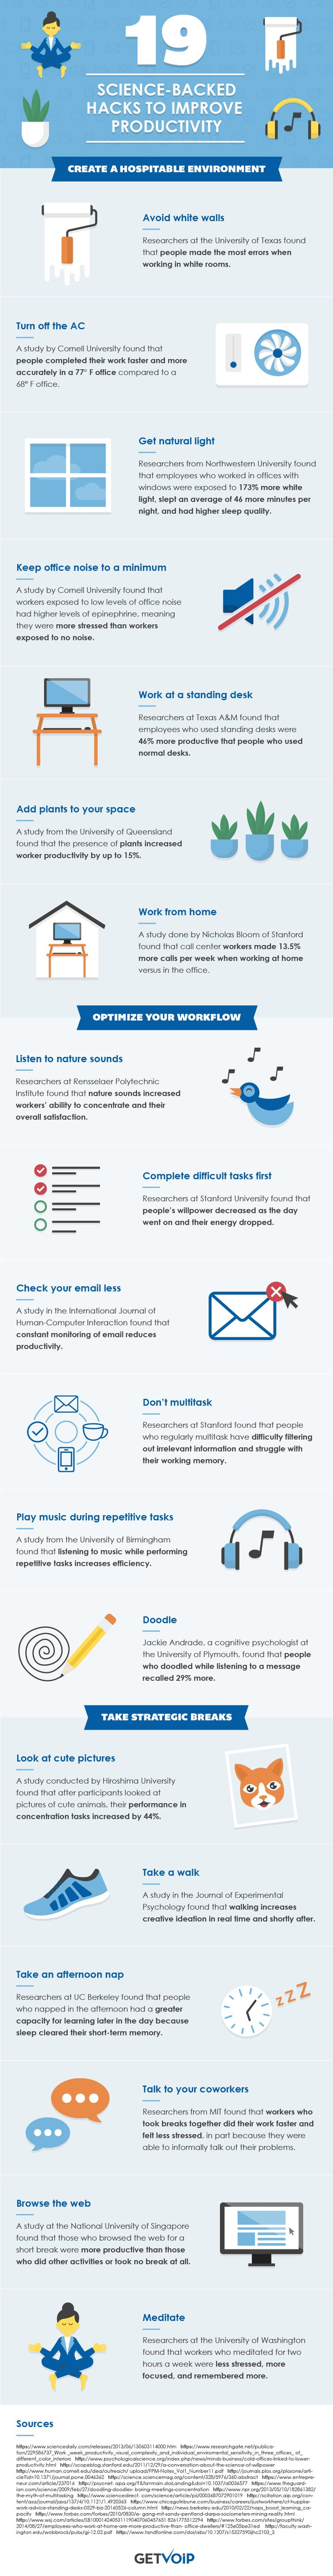 19 Science-Backed Hacks to Improve Productivity - #Infographic